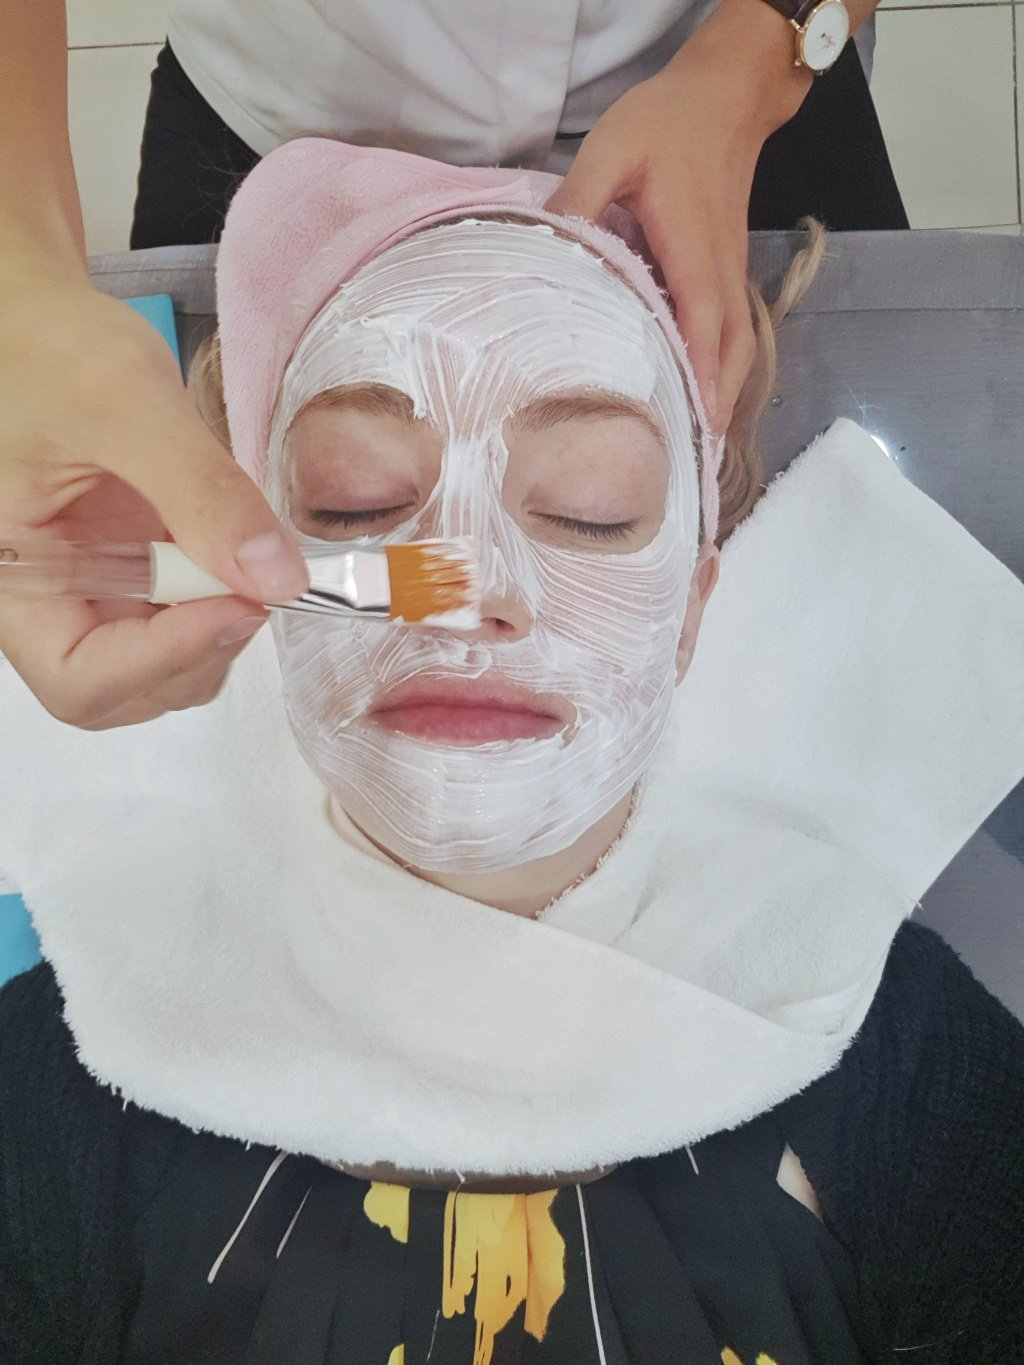 Suki in Seoul receiving numbing cream with Seoul Cosmetic Surgery